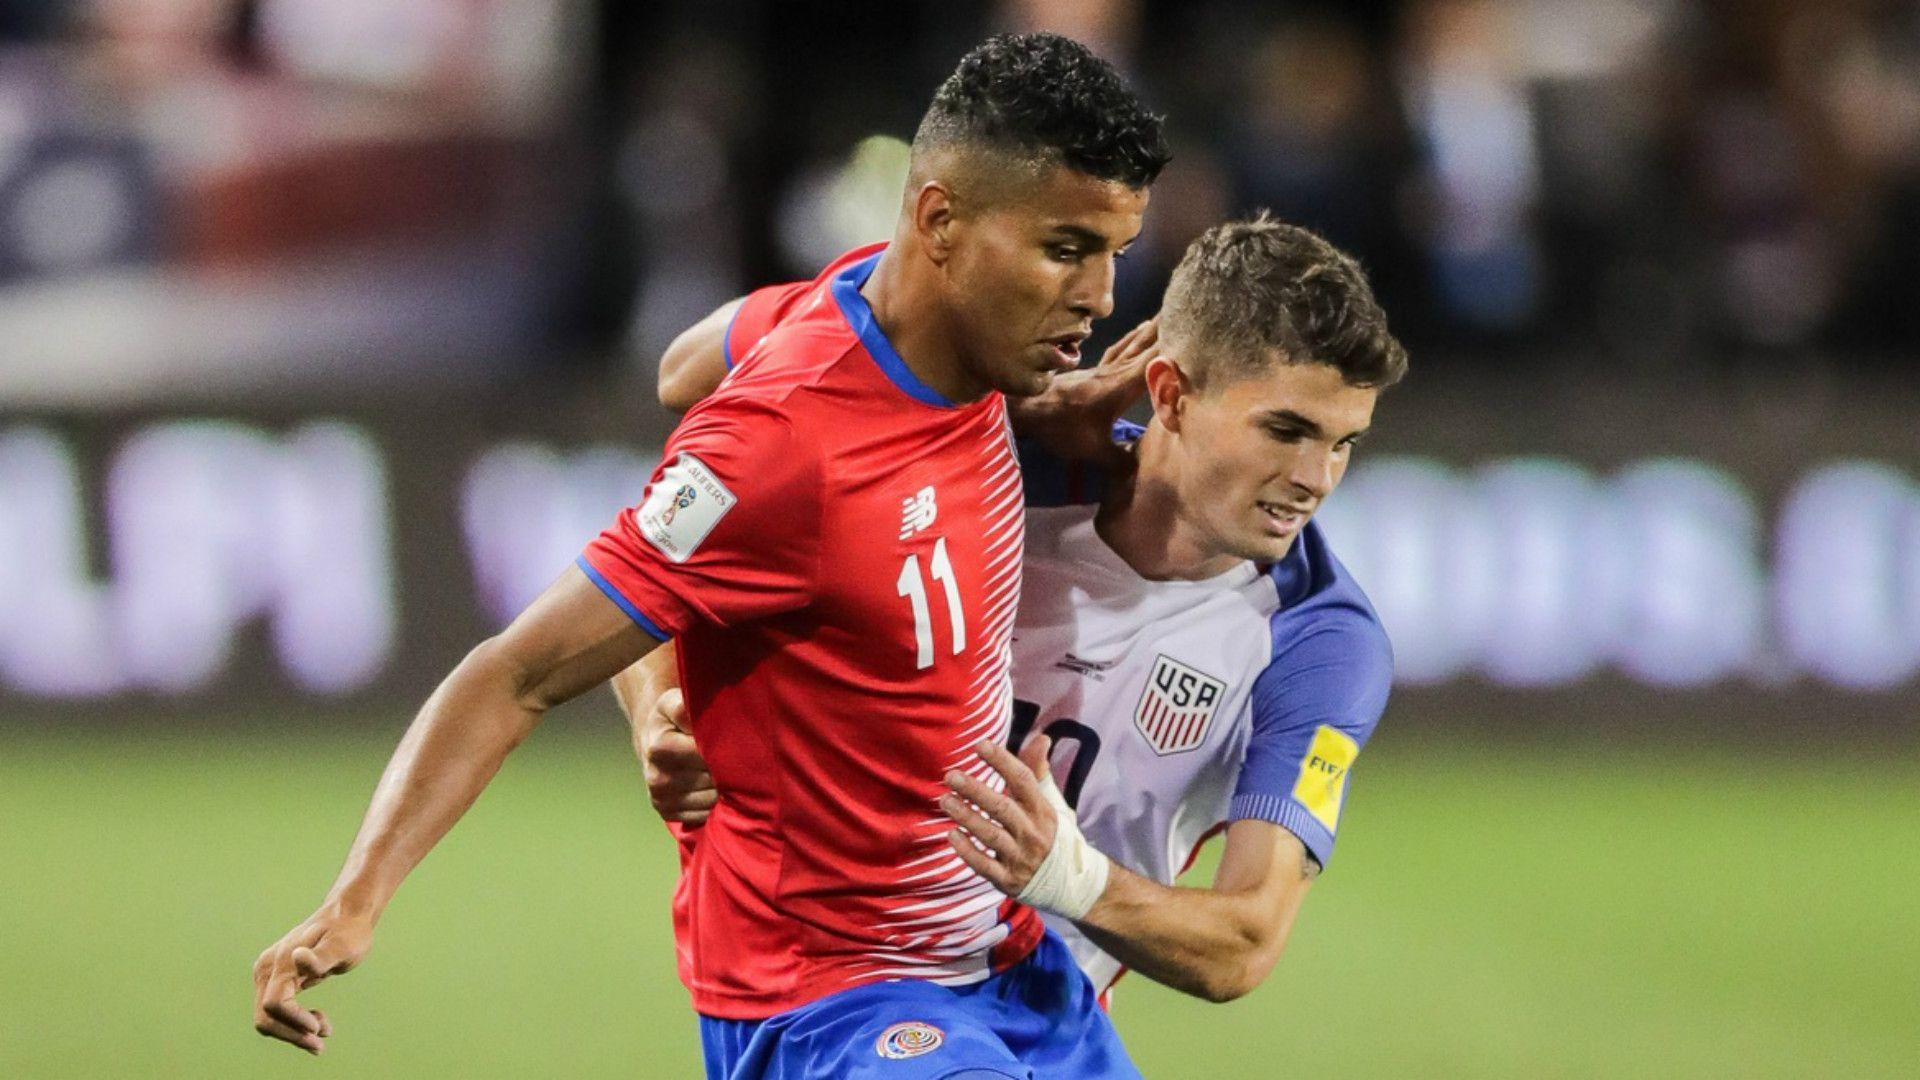 United States World Cup qualifying: Cameron's surprising stinker